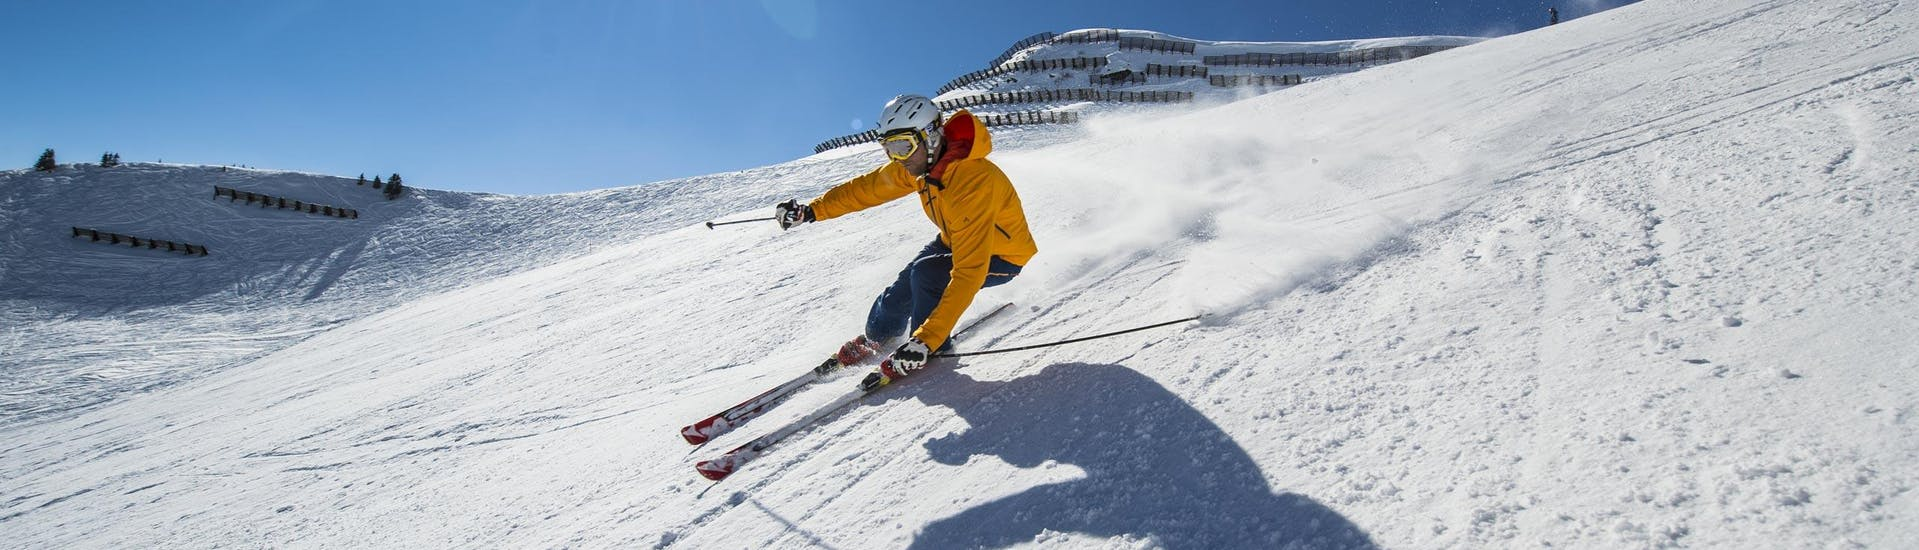 Skiing Adults/Private Cortina D'Ampezzo: A skier is skiing down a sunny ski slope while participating in an activity offered by Alberto Belfi.